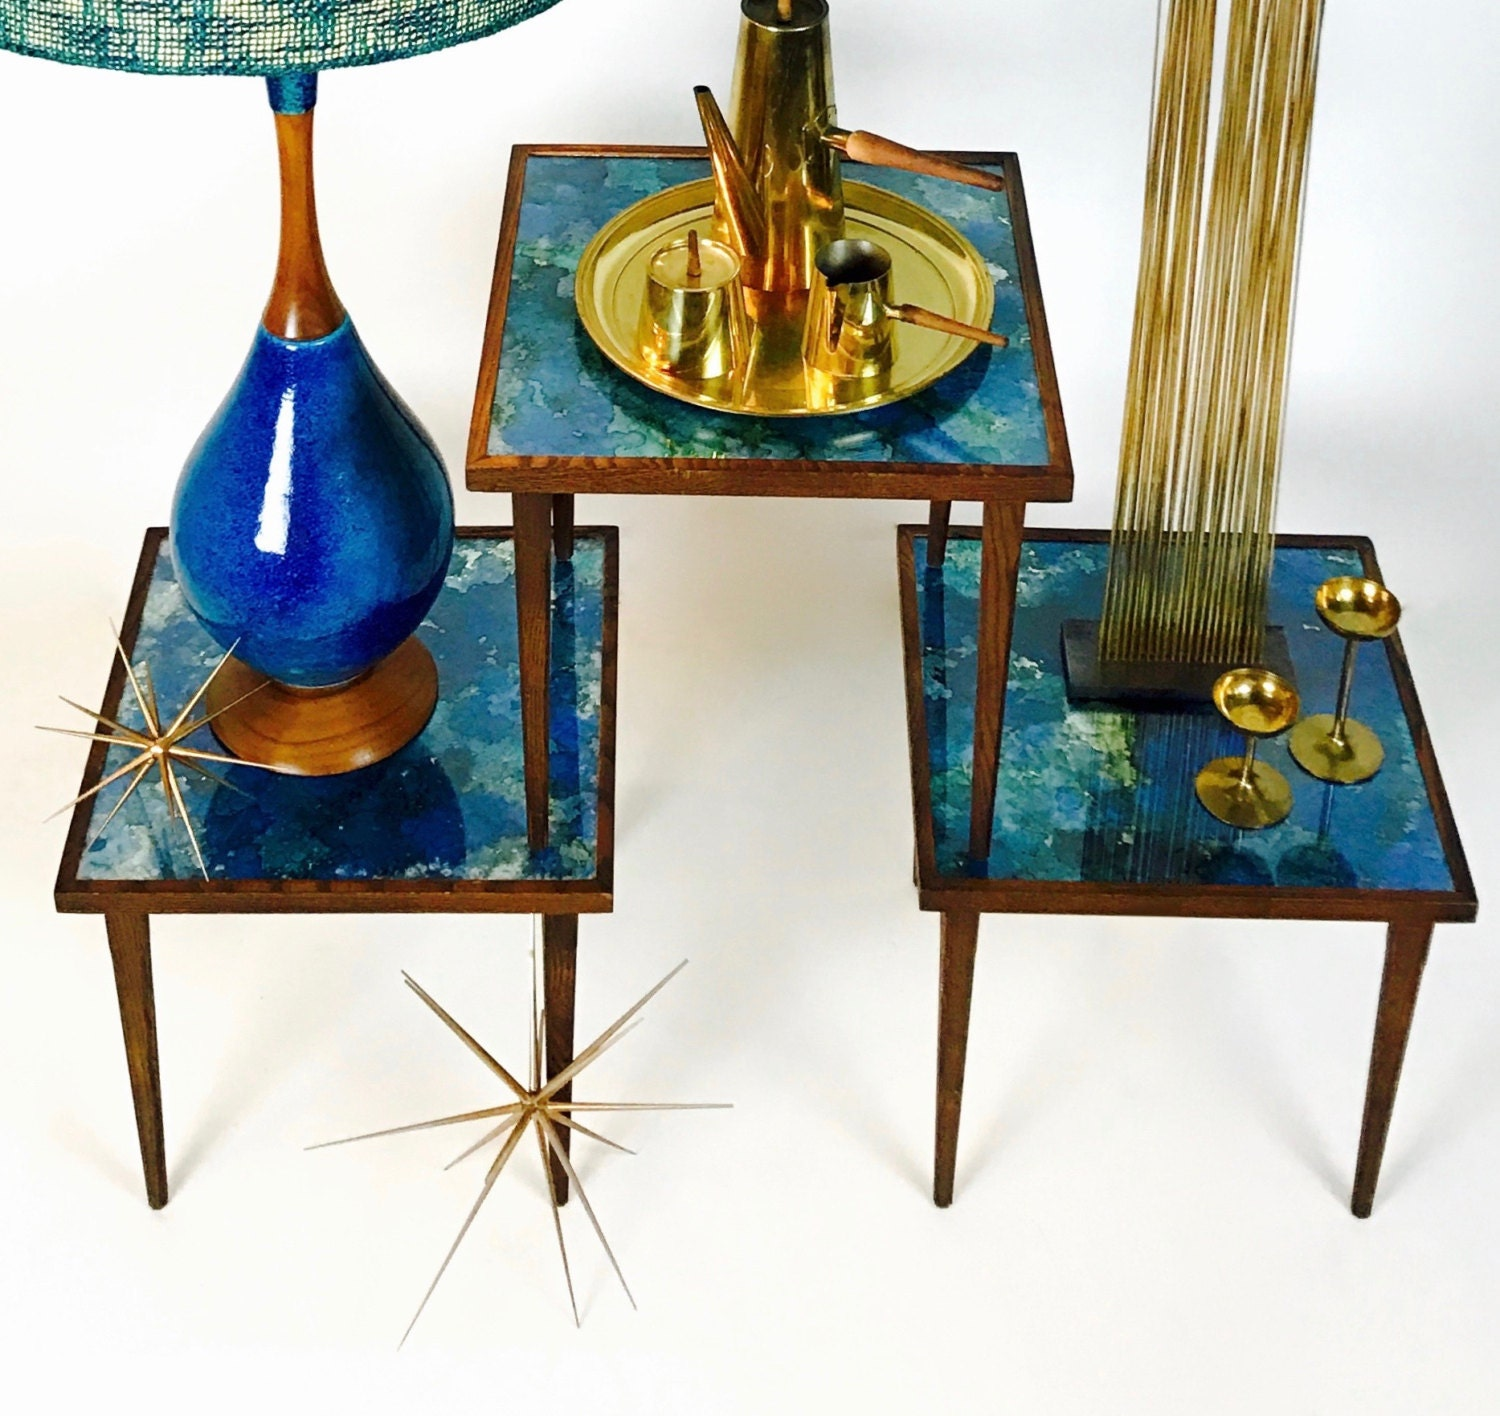 Stained Glass Coffee Table Sold Mid Century Modern Set Of 3 Nesting Tables In The Manner Of